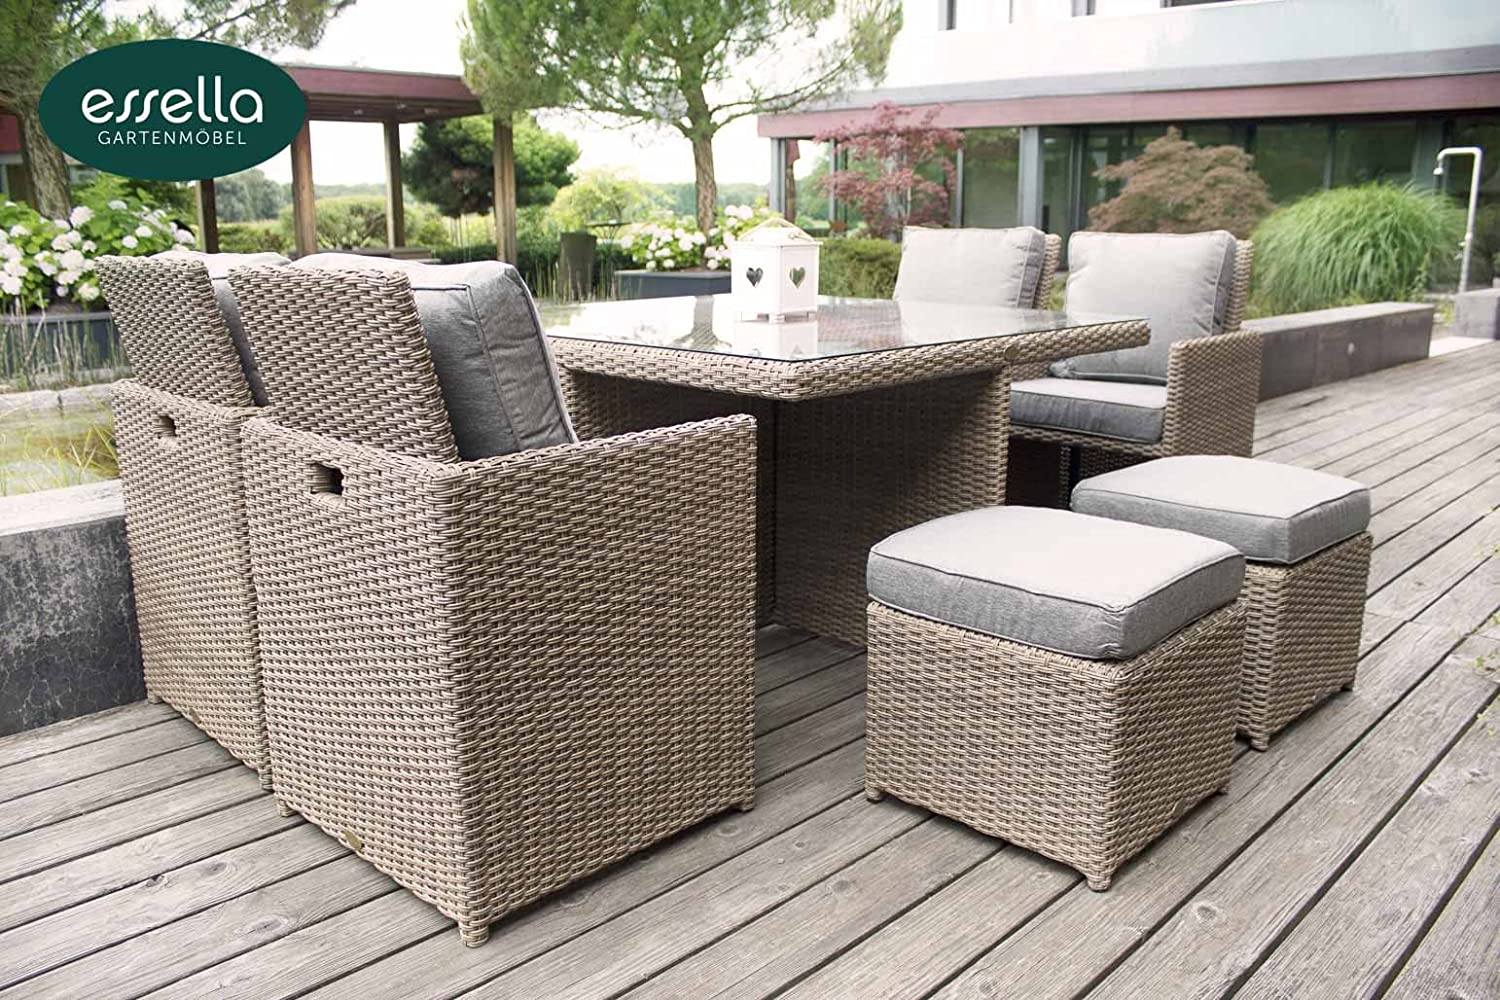 polyrattan sitzgruppe vienna 4 personen rundgeflecht hellbraun gartenm bel terassenm bel. Black Bedroom Furniture Sets. Home Design Ideas